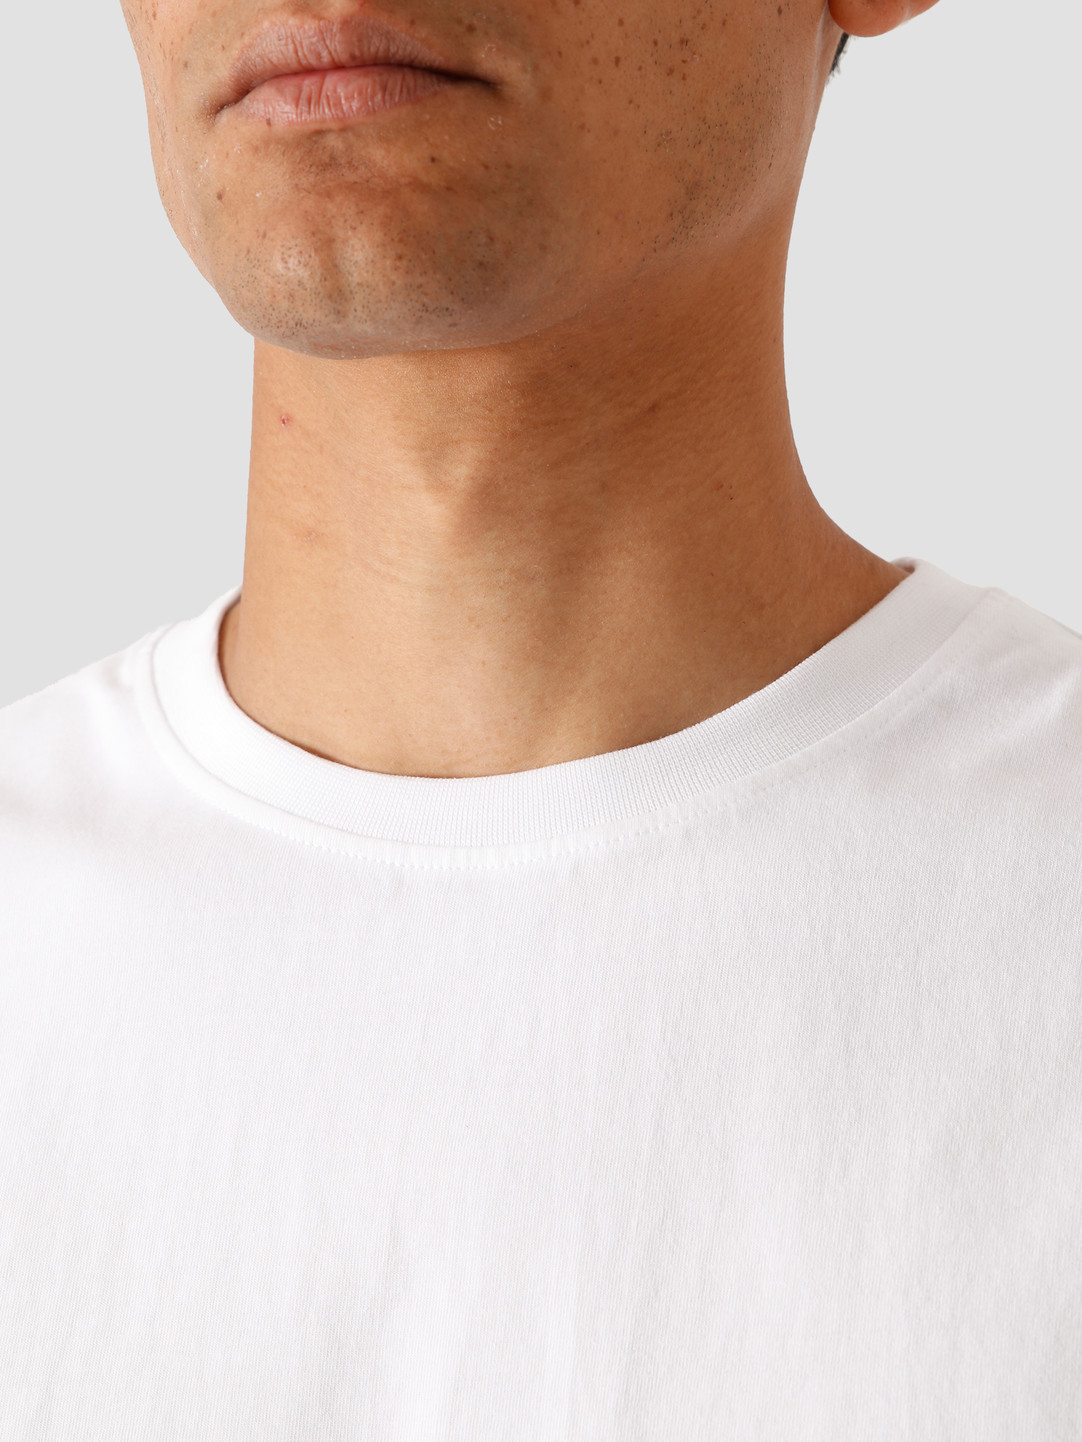 Quality Blanks Quality Blanks 2-Pack QB01 T-Shirt White